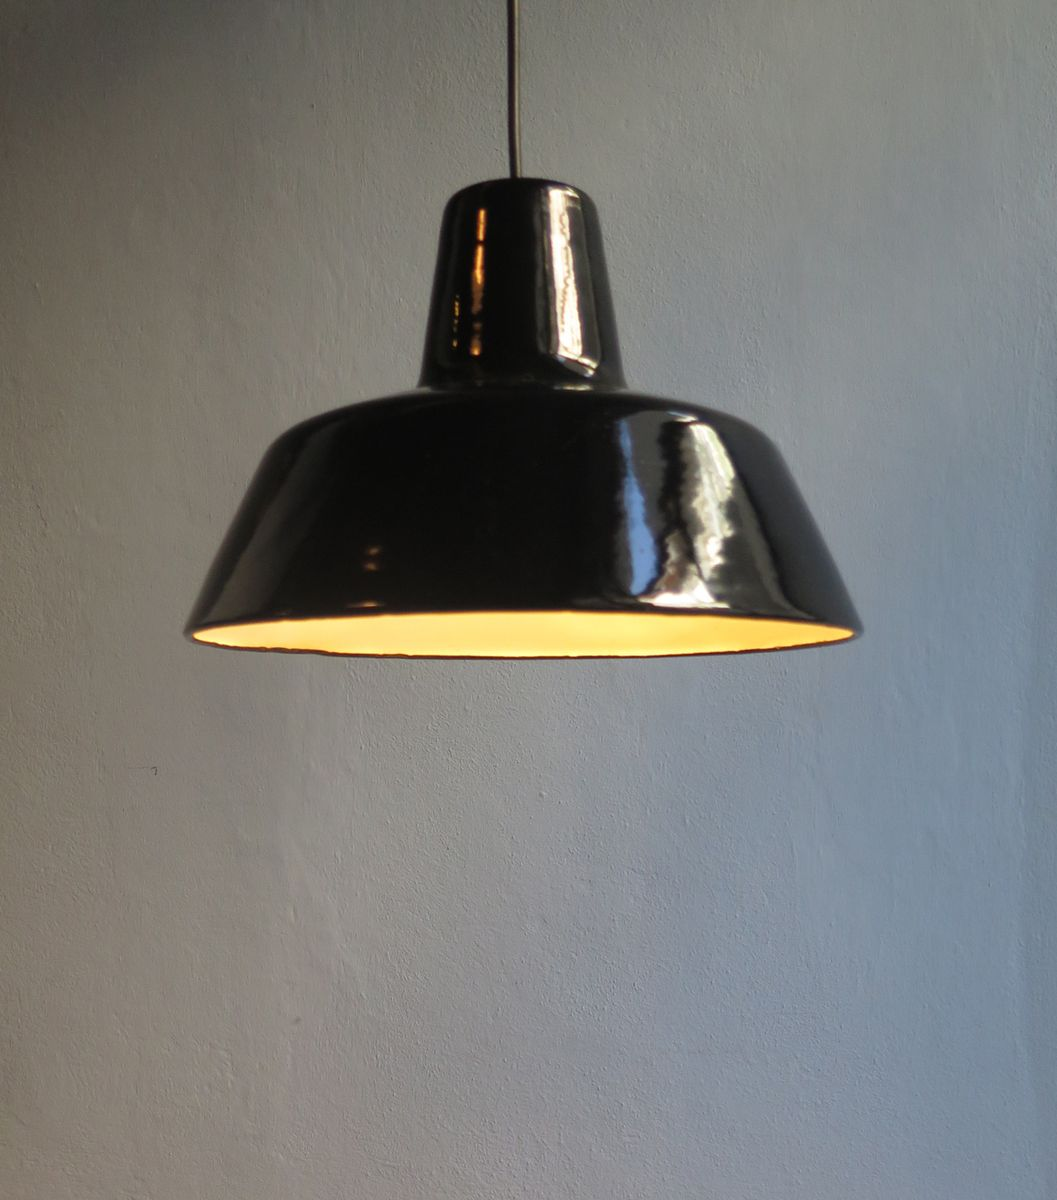 lighting light industrial small products retro enameled ceiling grey enamel pendant